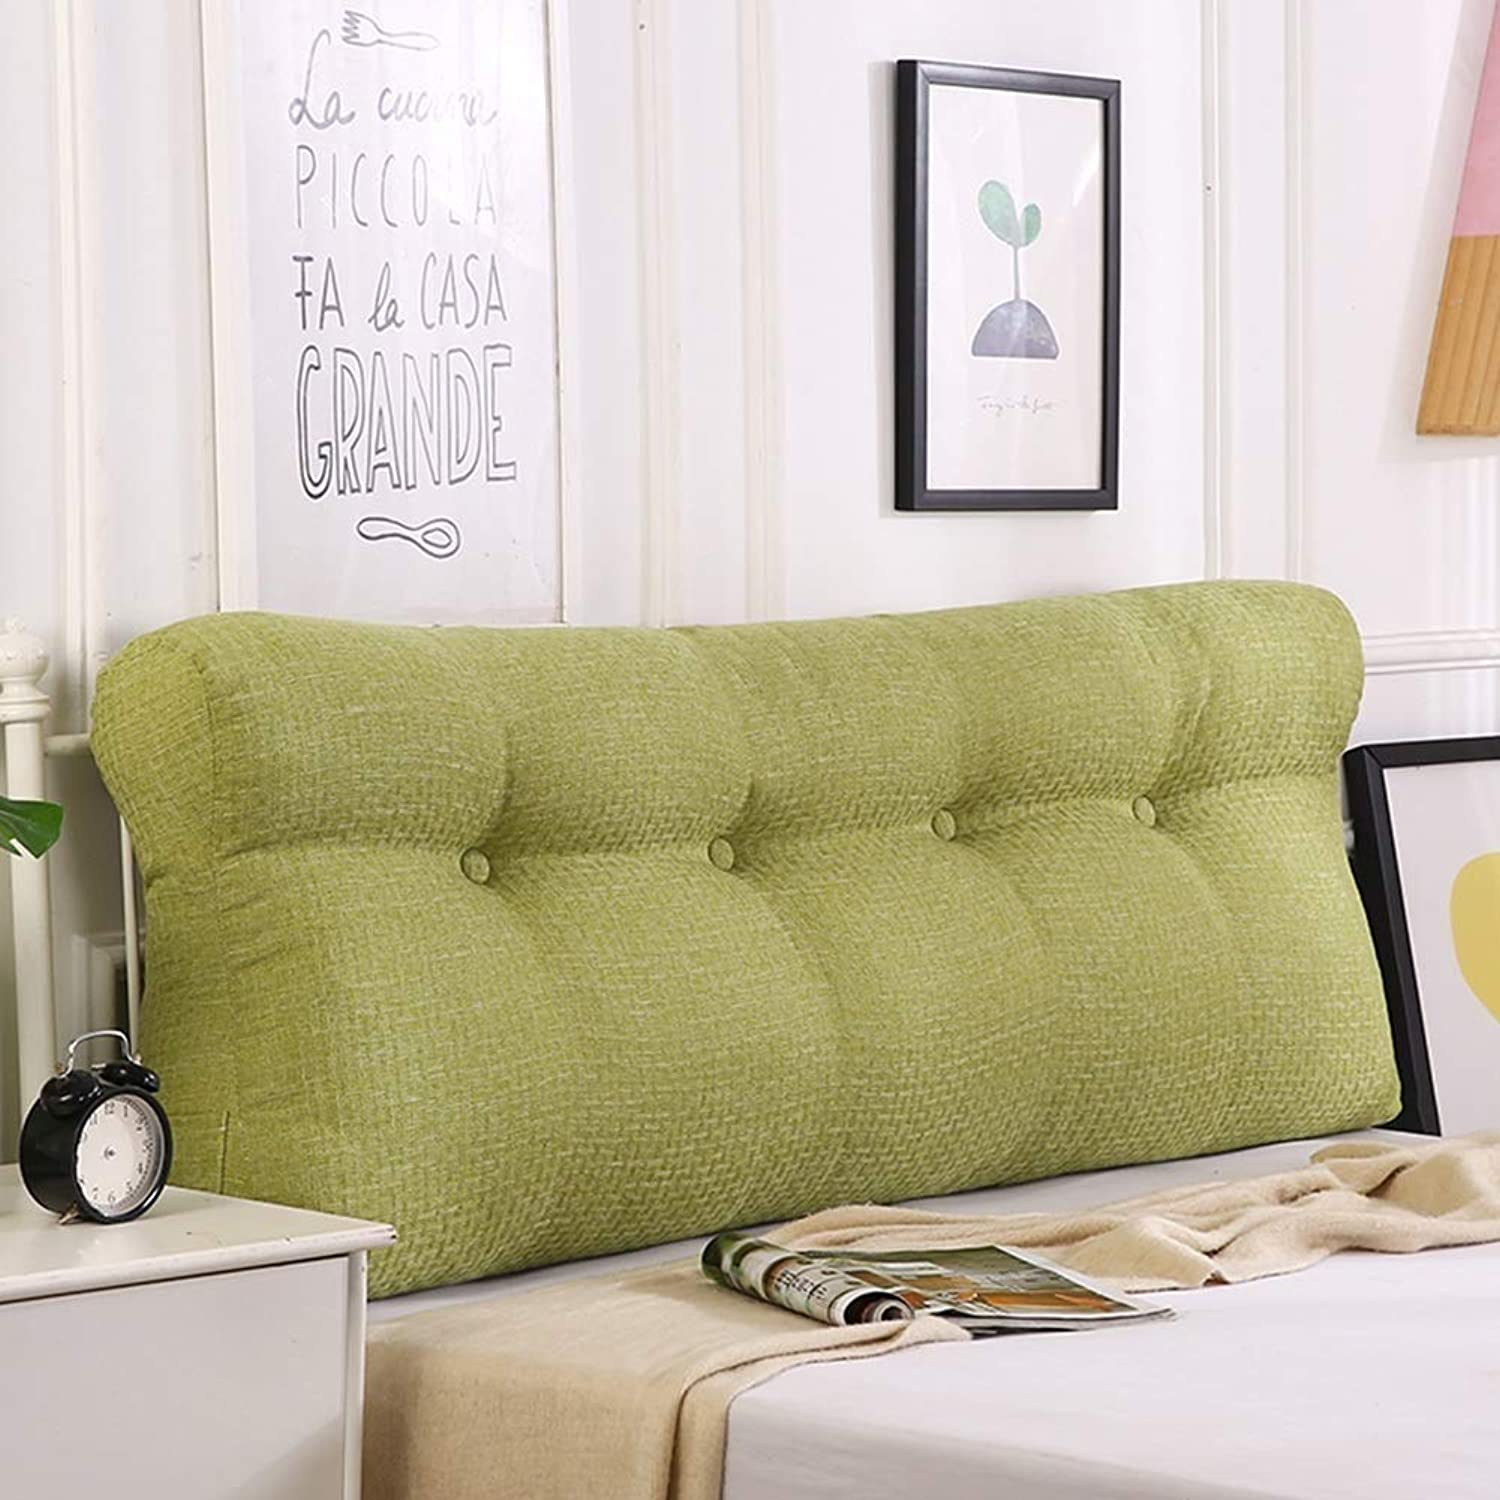 LPD-Bed backrest Cushion Headboard Bedside Cushion Pads Cover Bed Wedges Backrest Waist Pad Cloth Soft Case Home Triangle Waist Belt Backrest Washable, 6 colors (color   Green, Size   120x50x15cm)